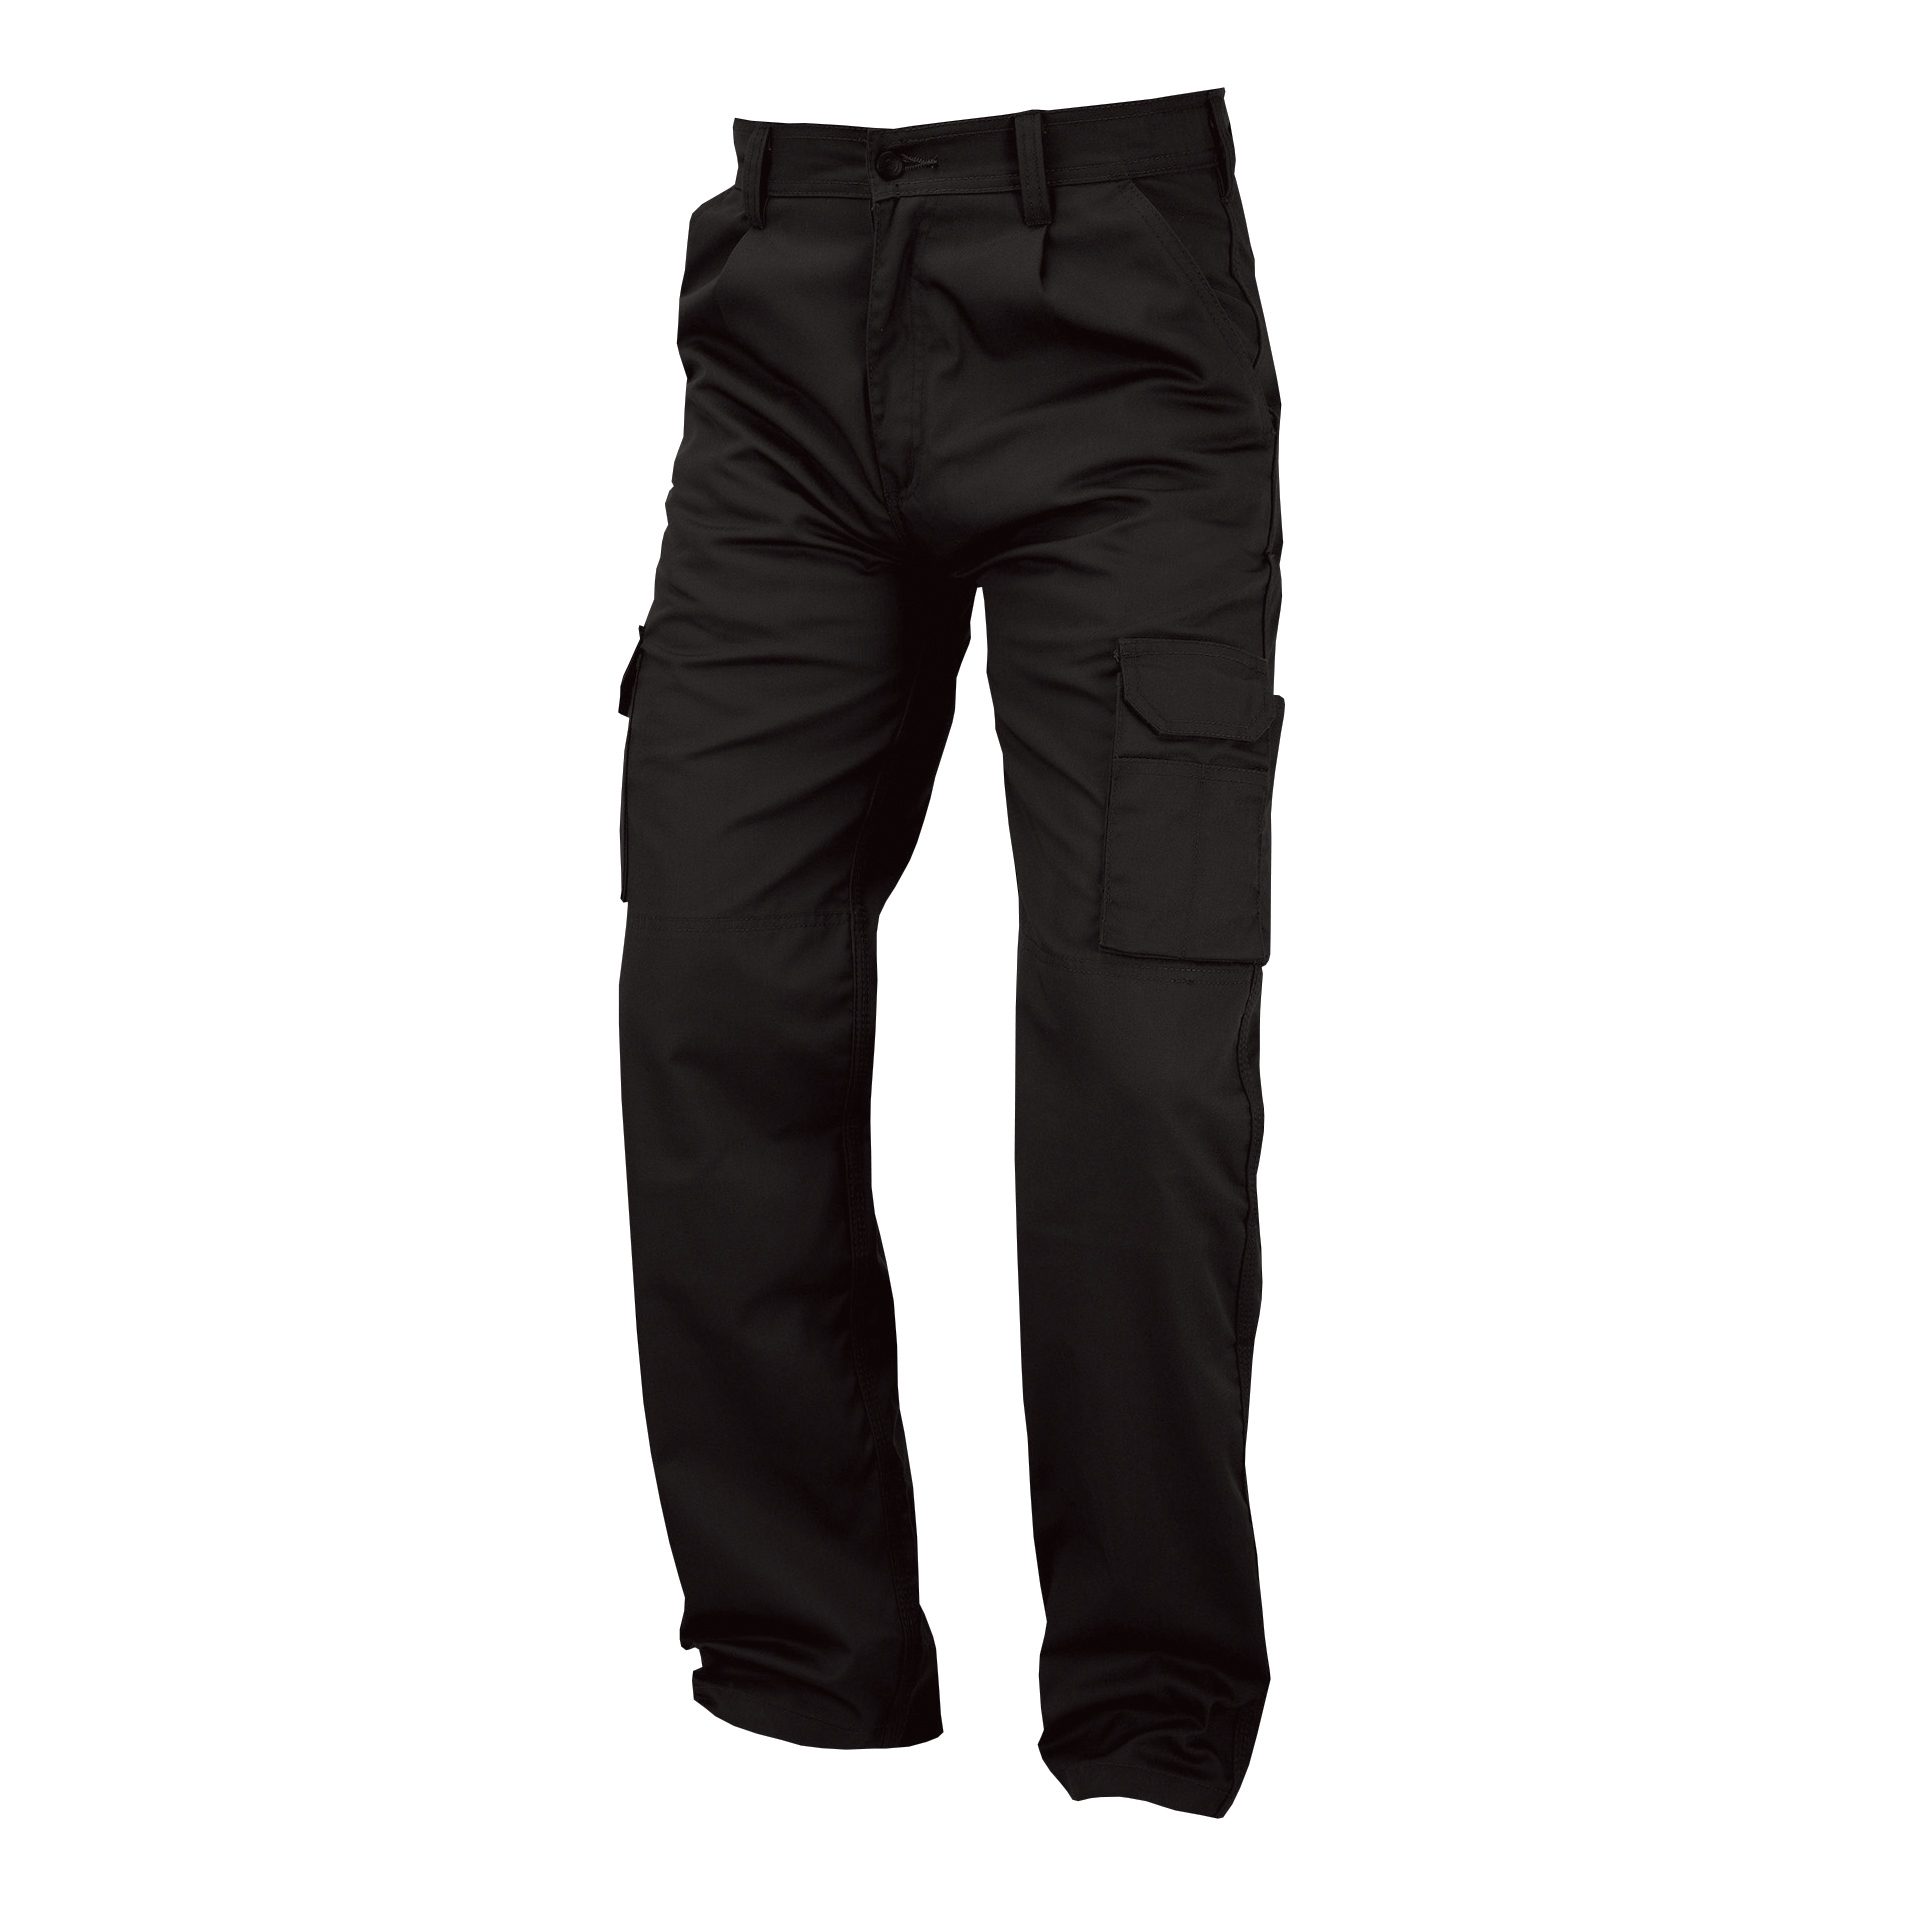 Combat Trouser Multi-functional Waist 32in Leg 29in Black Ref PCTHWBL32S *Approx 3 Day Leadtime*